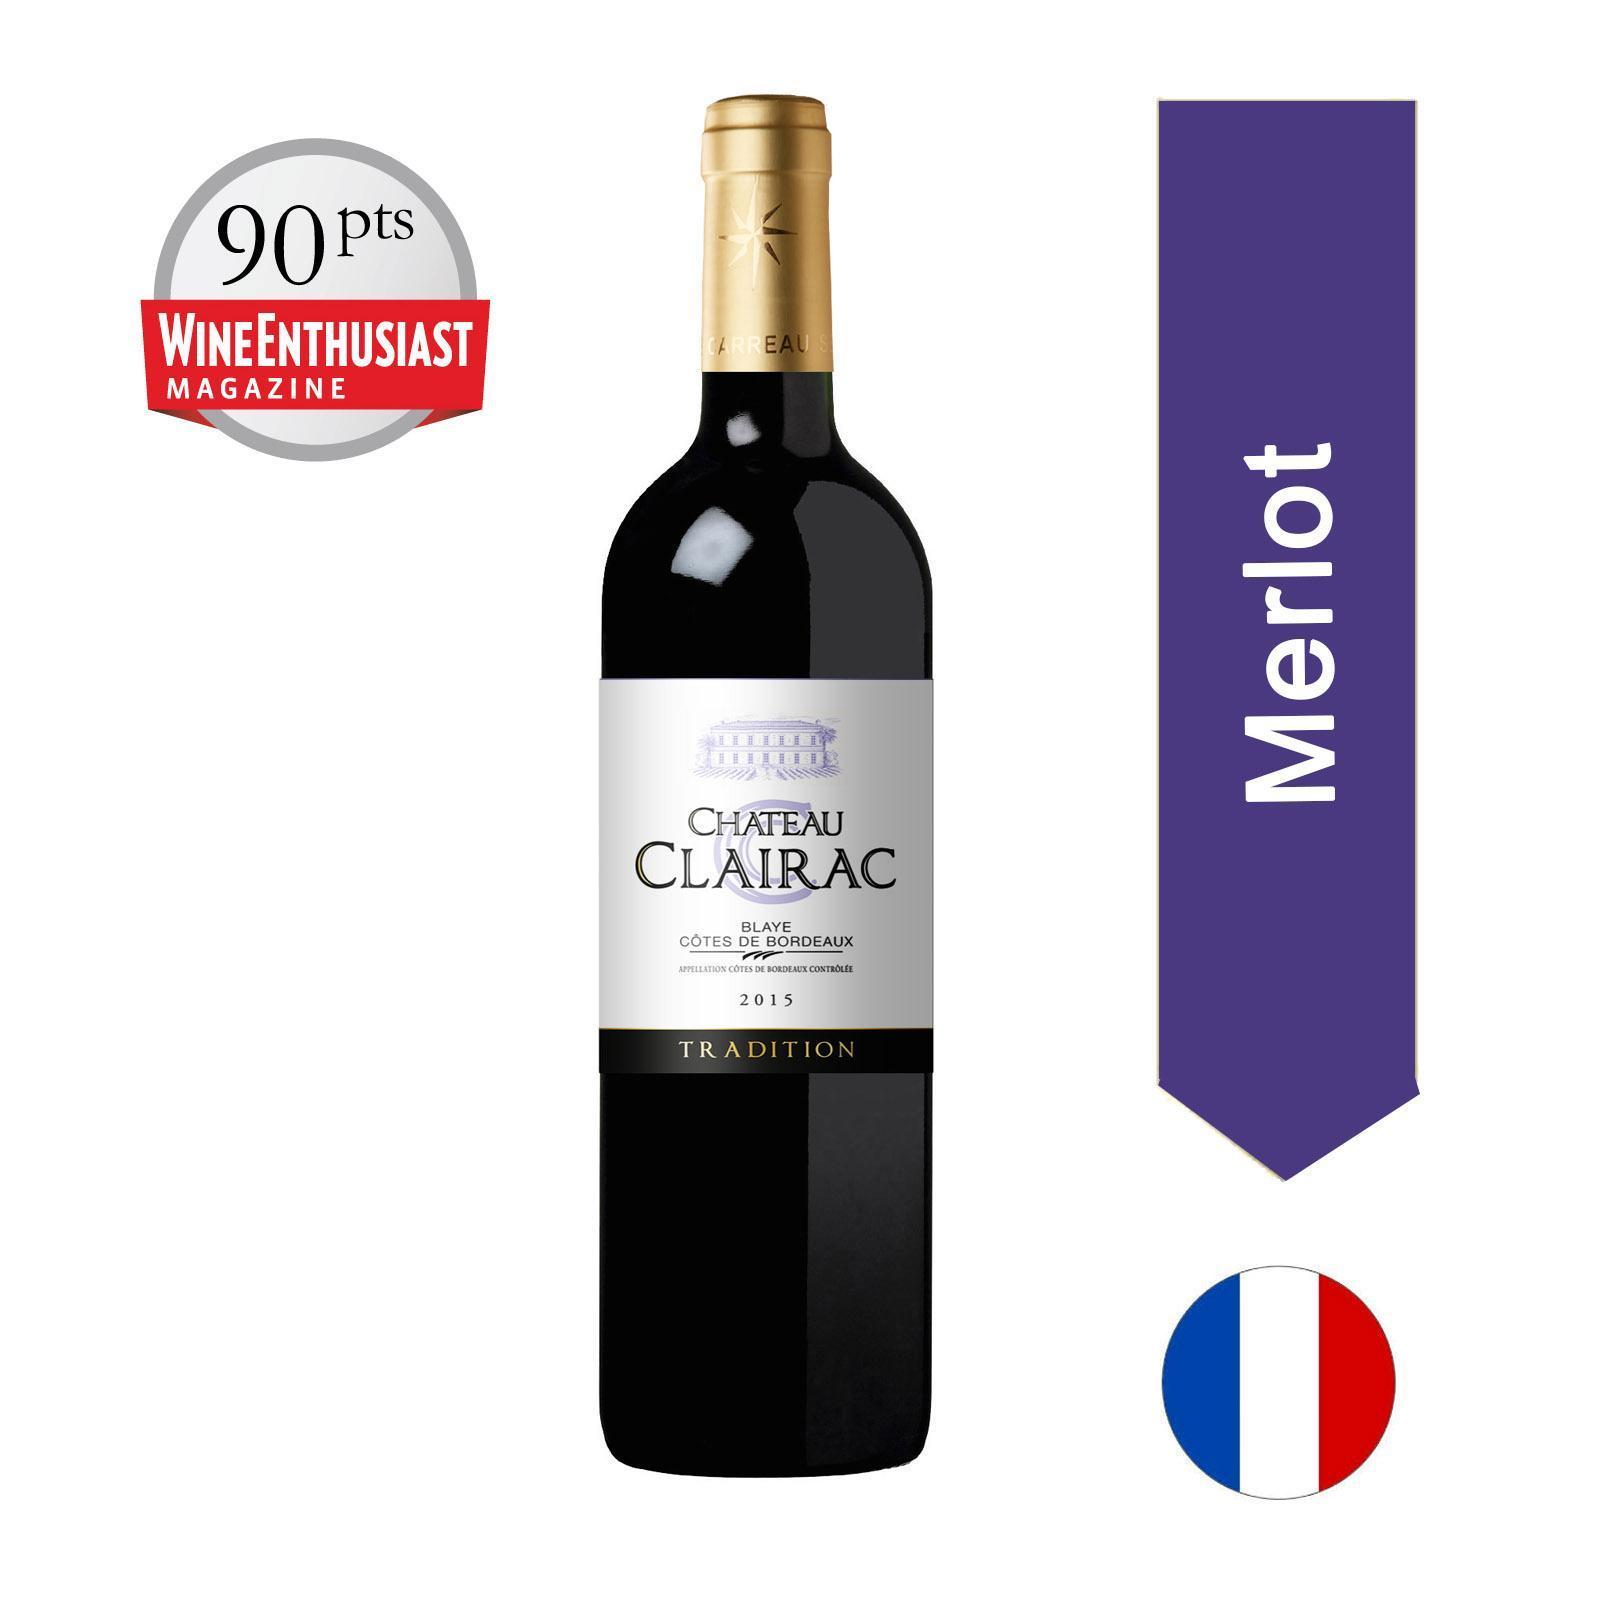 Chateau de Clairac - Blaye Cotes De Bordeaux - Merlot - 750Ml - By The Vintage Wine Club